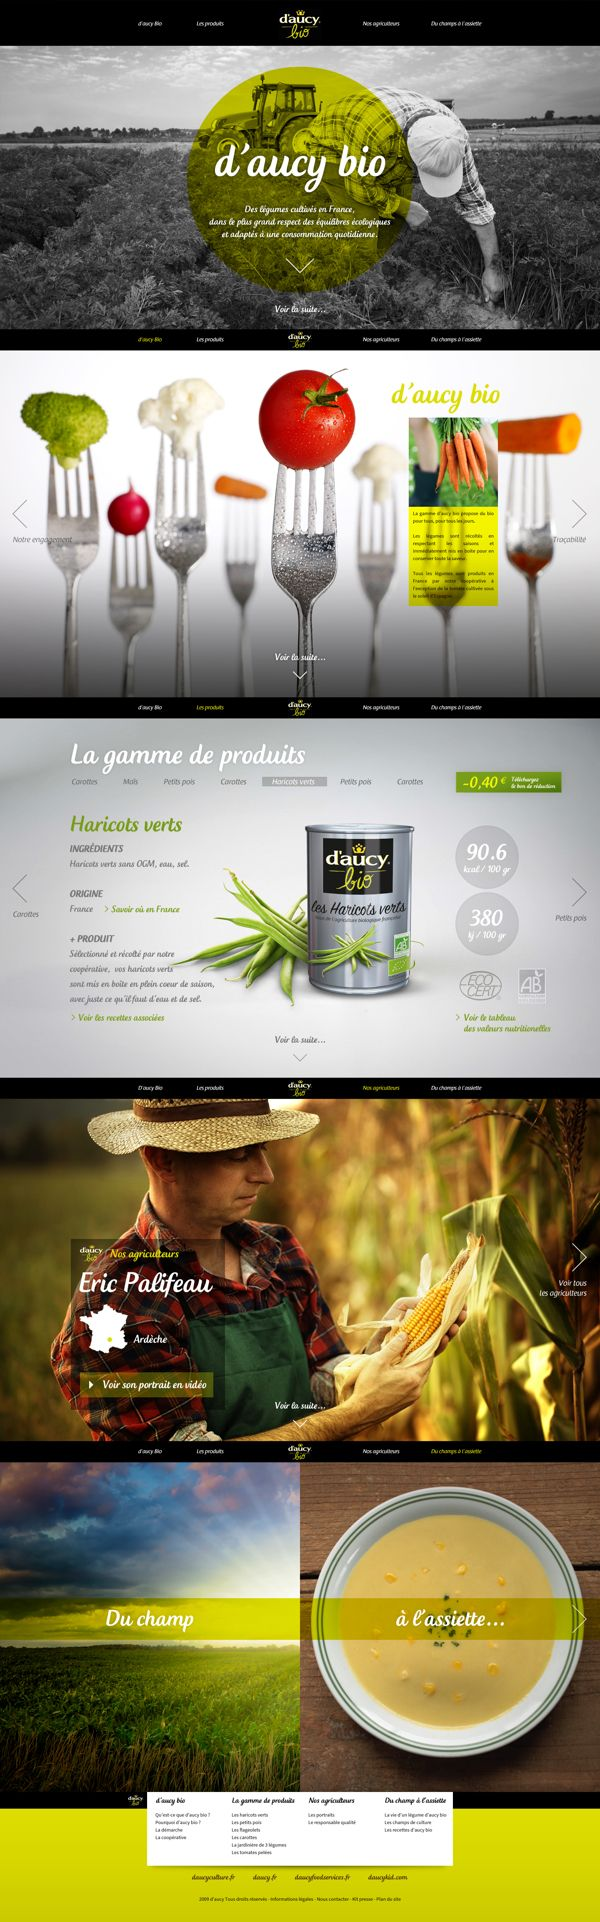 Cool web design #web #WebDesign #design #creative #website #awesome #inspiration